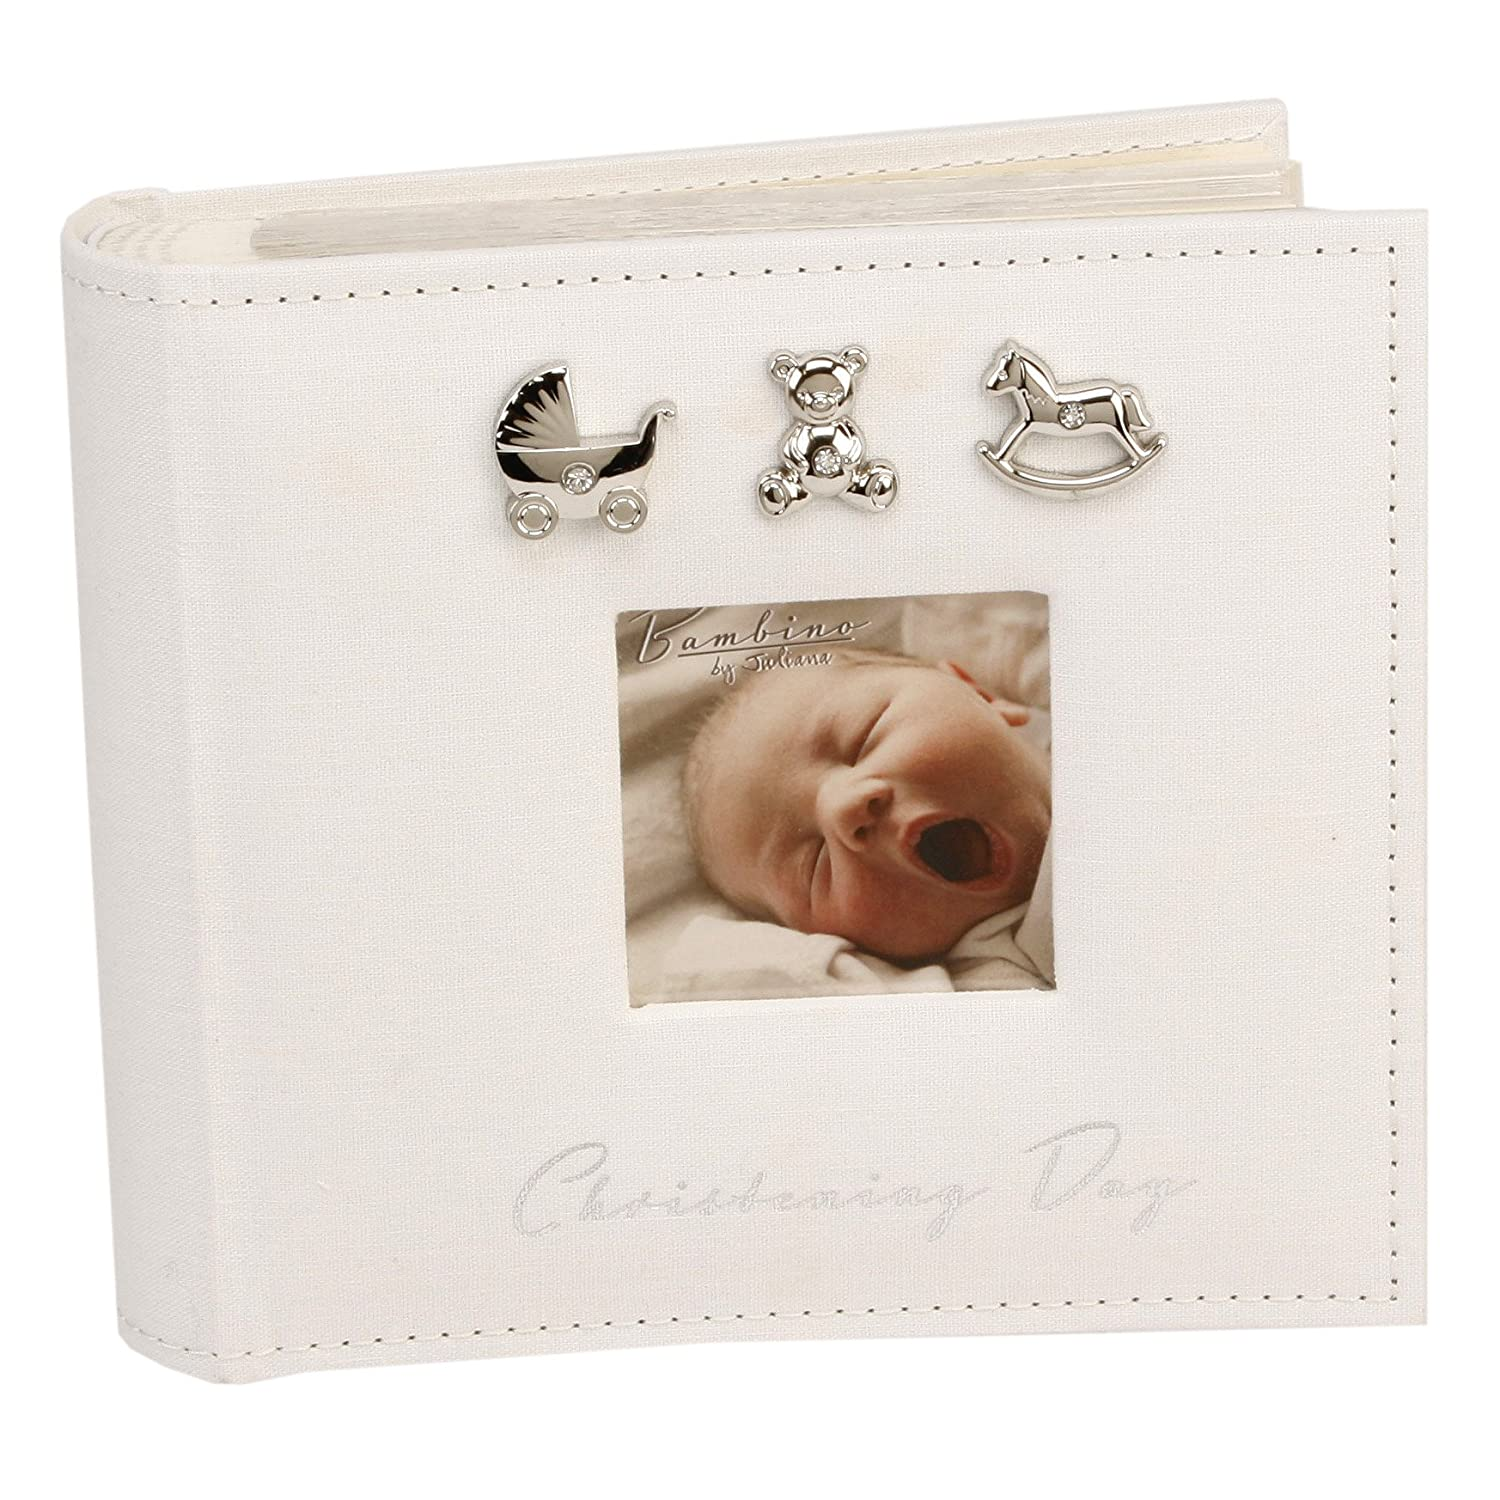 Bambino CG921 Baby Christening Guest Book, Silver Charms Optikos Design